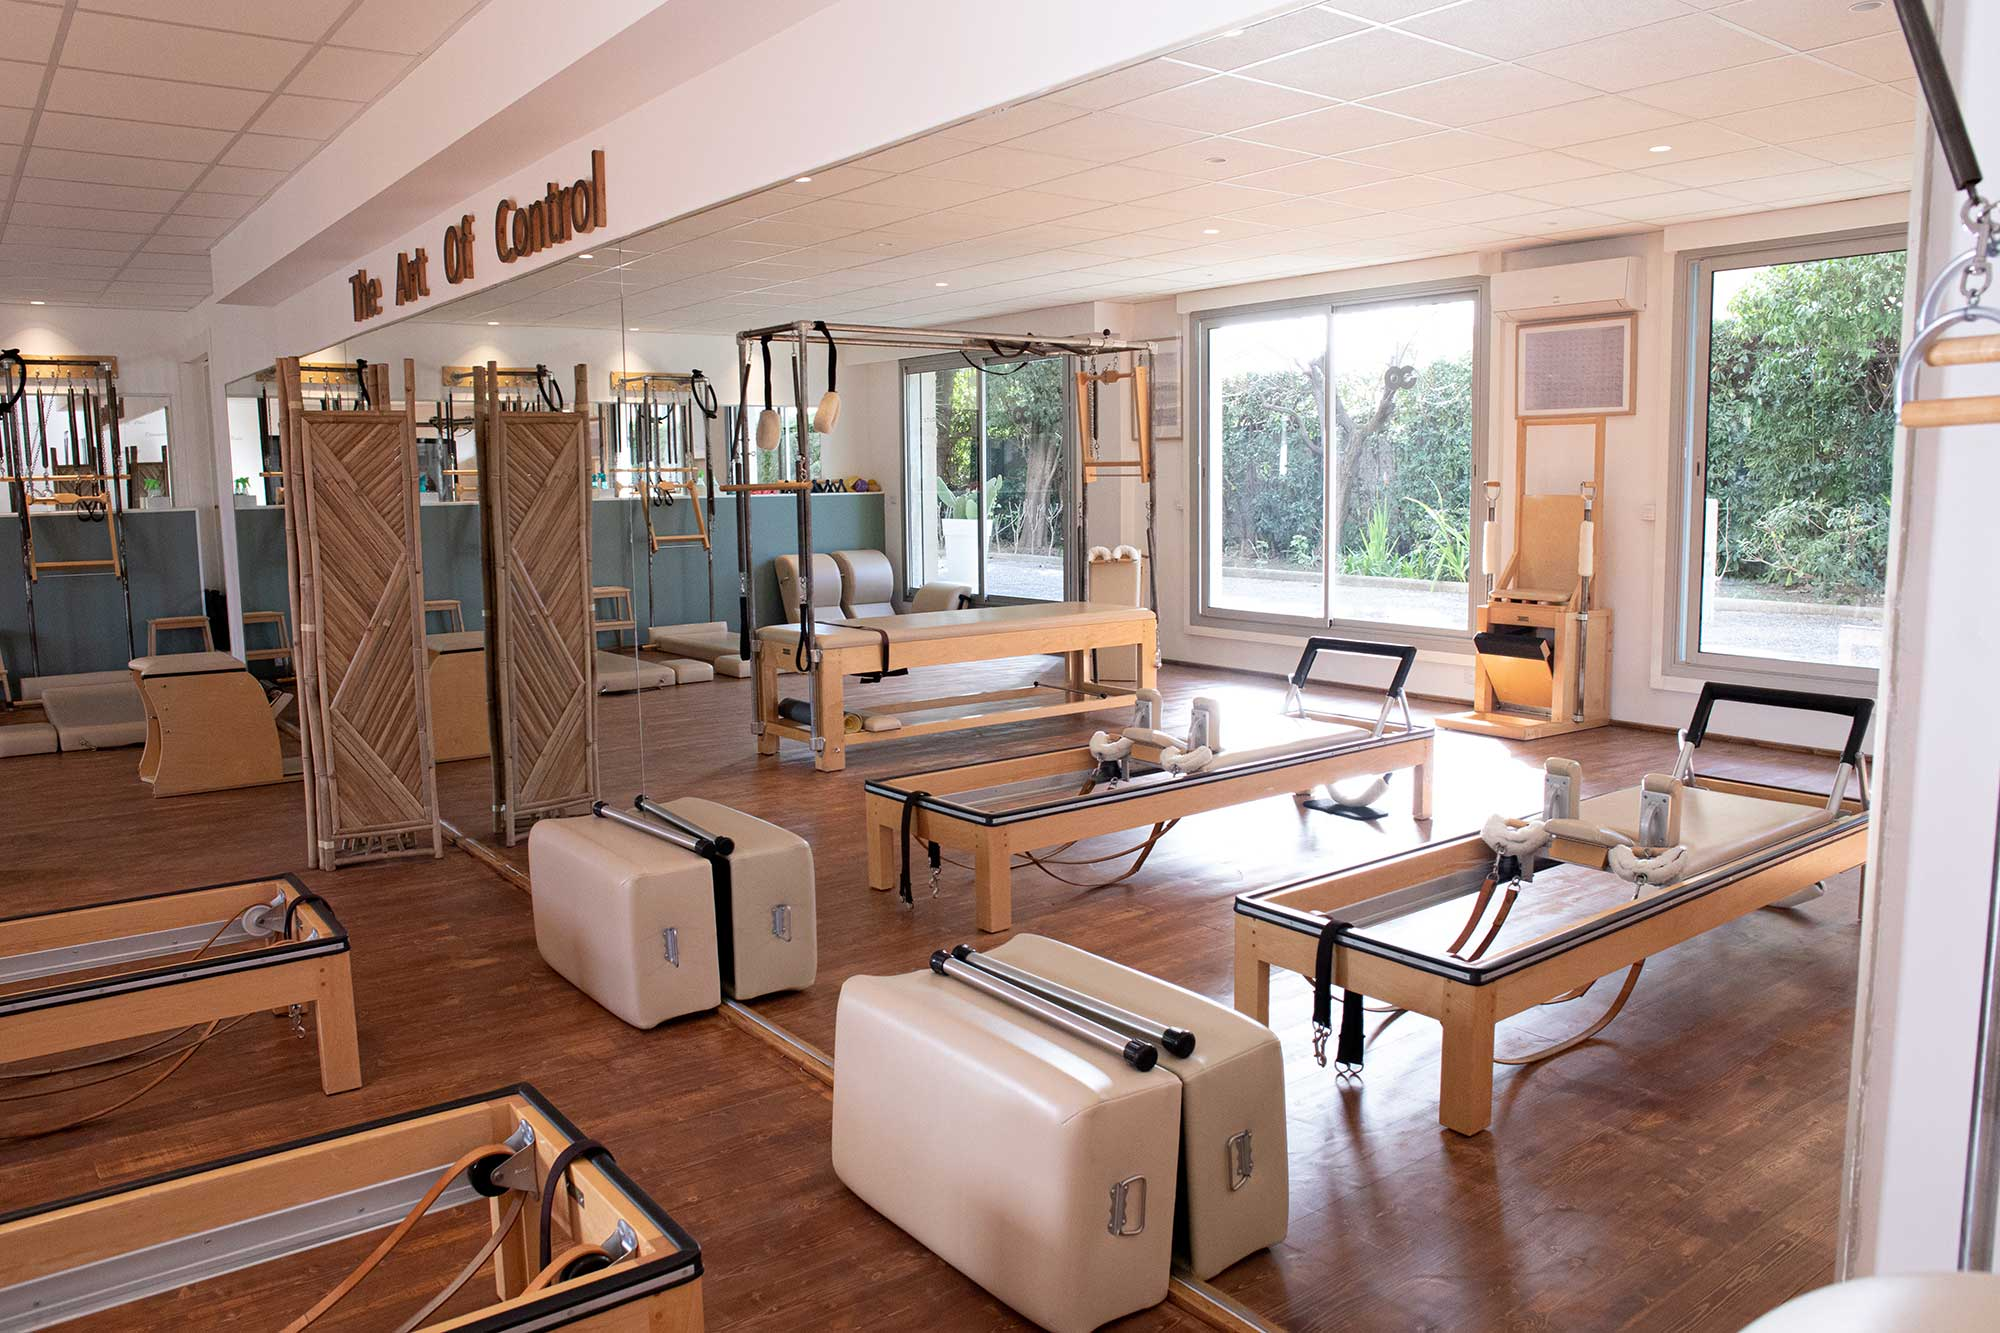 Le-studio-Pilates-The-Art-Of-Control-à-cagnes-sur-mer